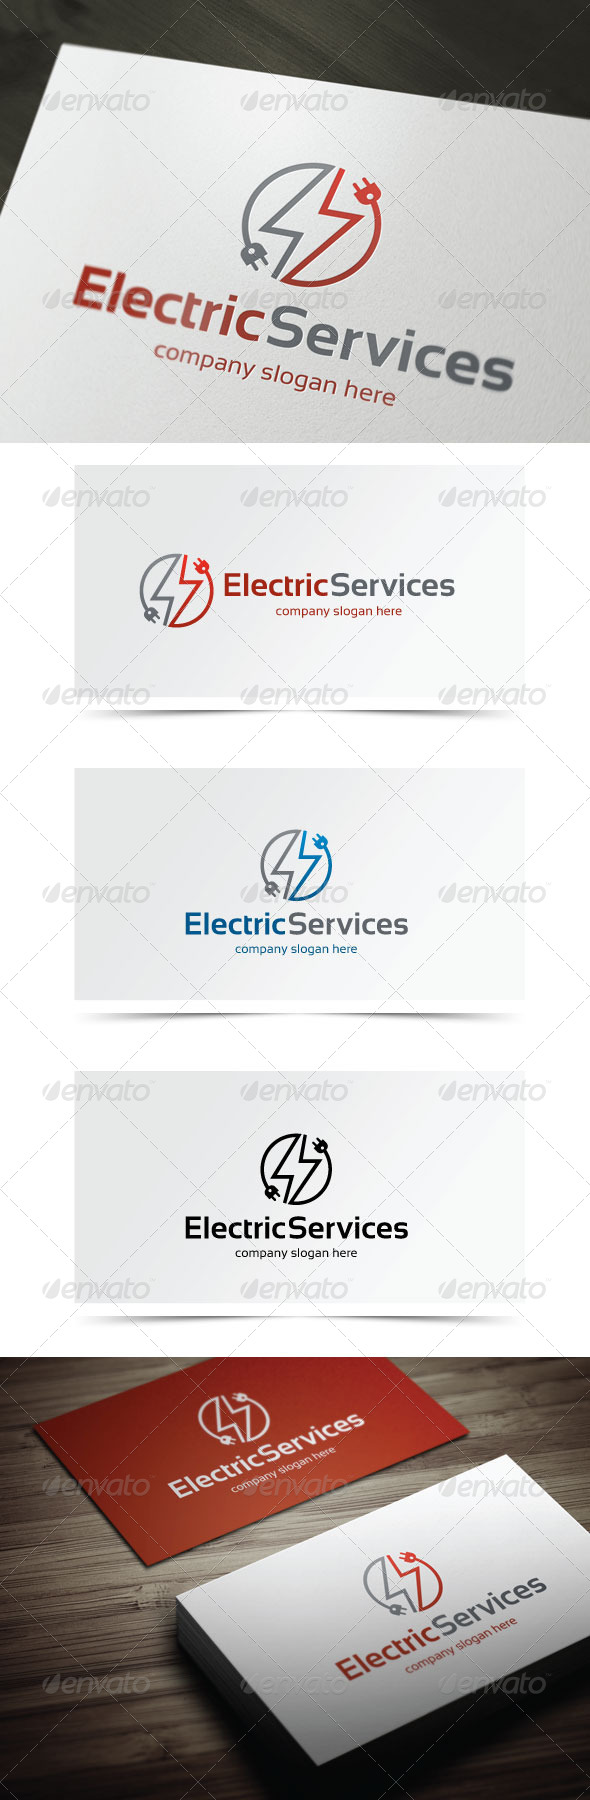 GraphicRiver Electric Services 5698659